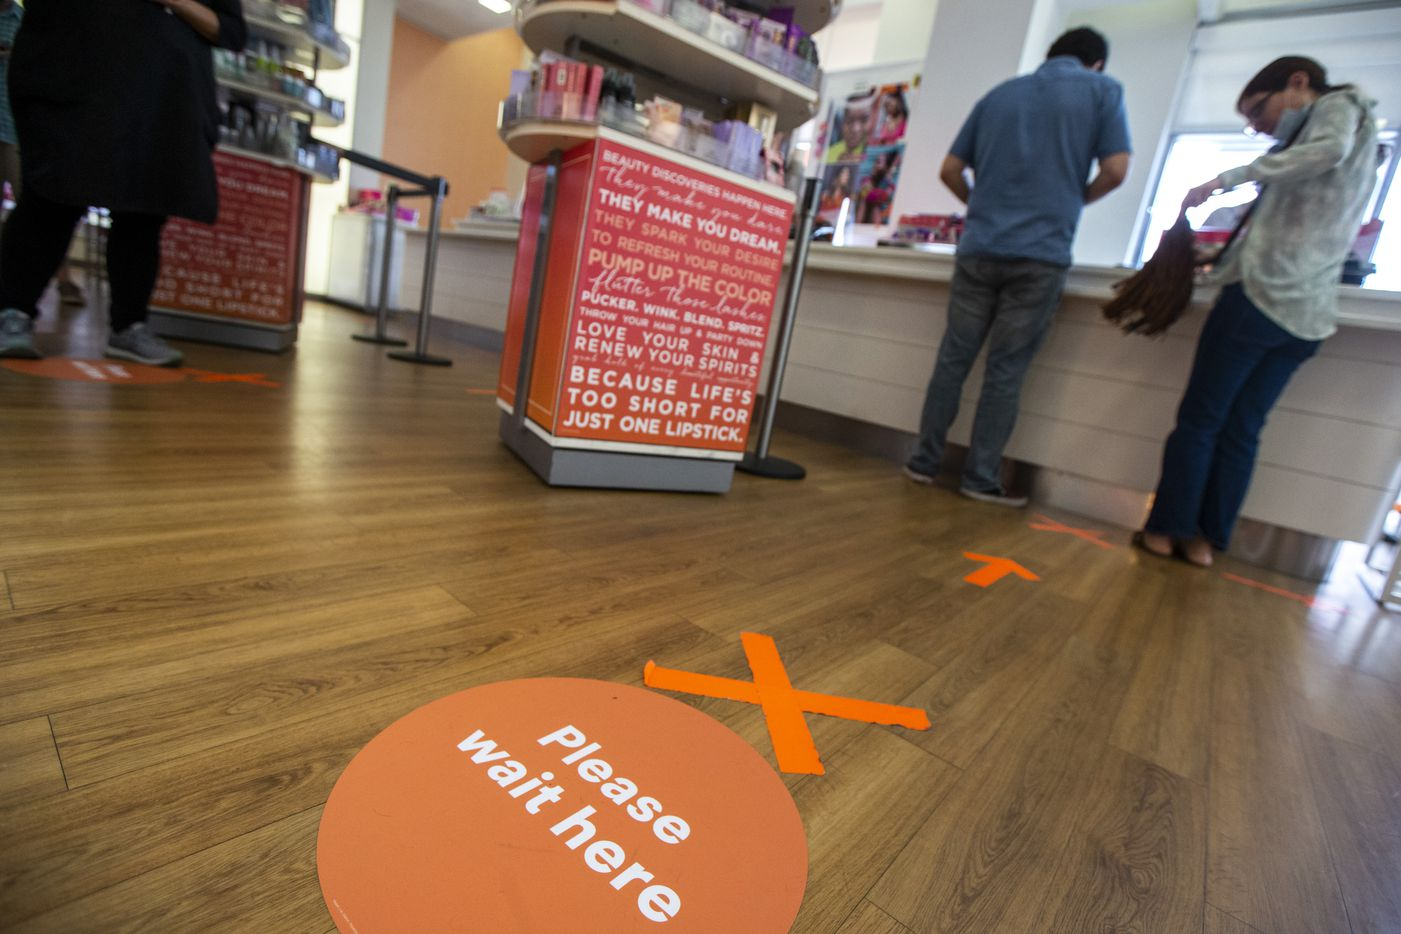 Social distancing markers are taped to the ground as customers check out at the registers at the Ulta Beauty store at The Shops at Park Lane in Dallas.